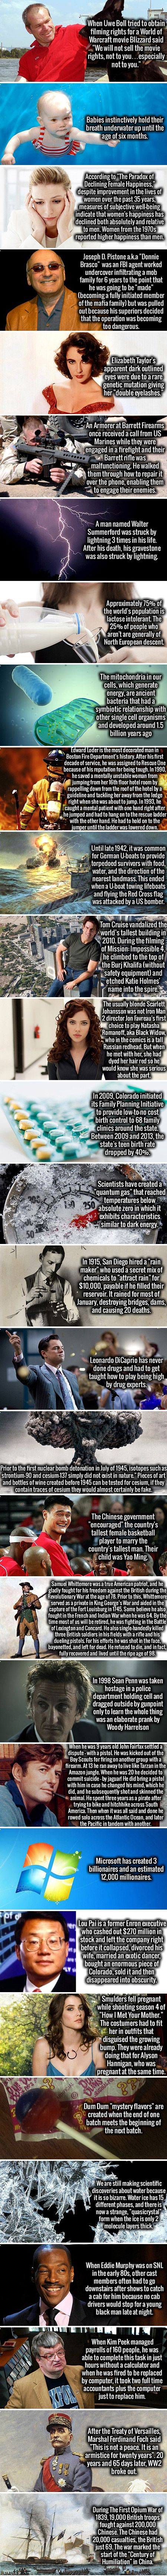 It is that time again, time for some more weird facts you probably did not know about.